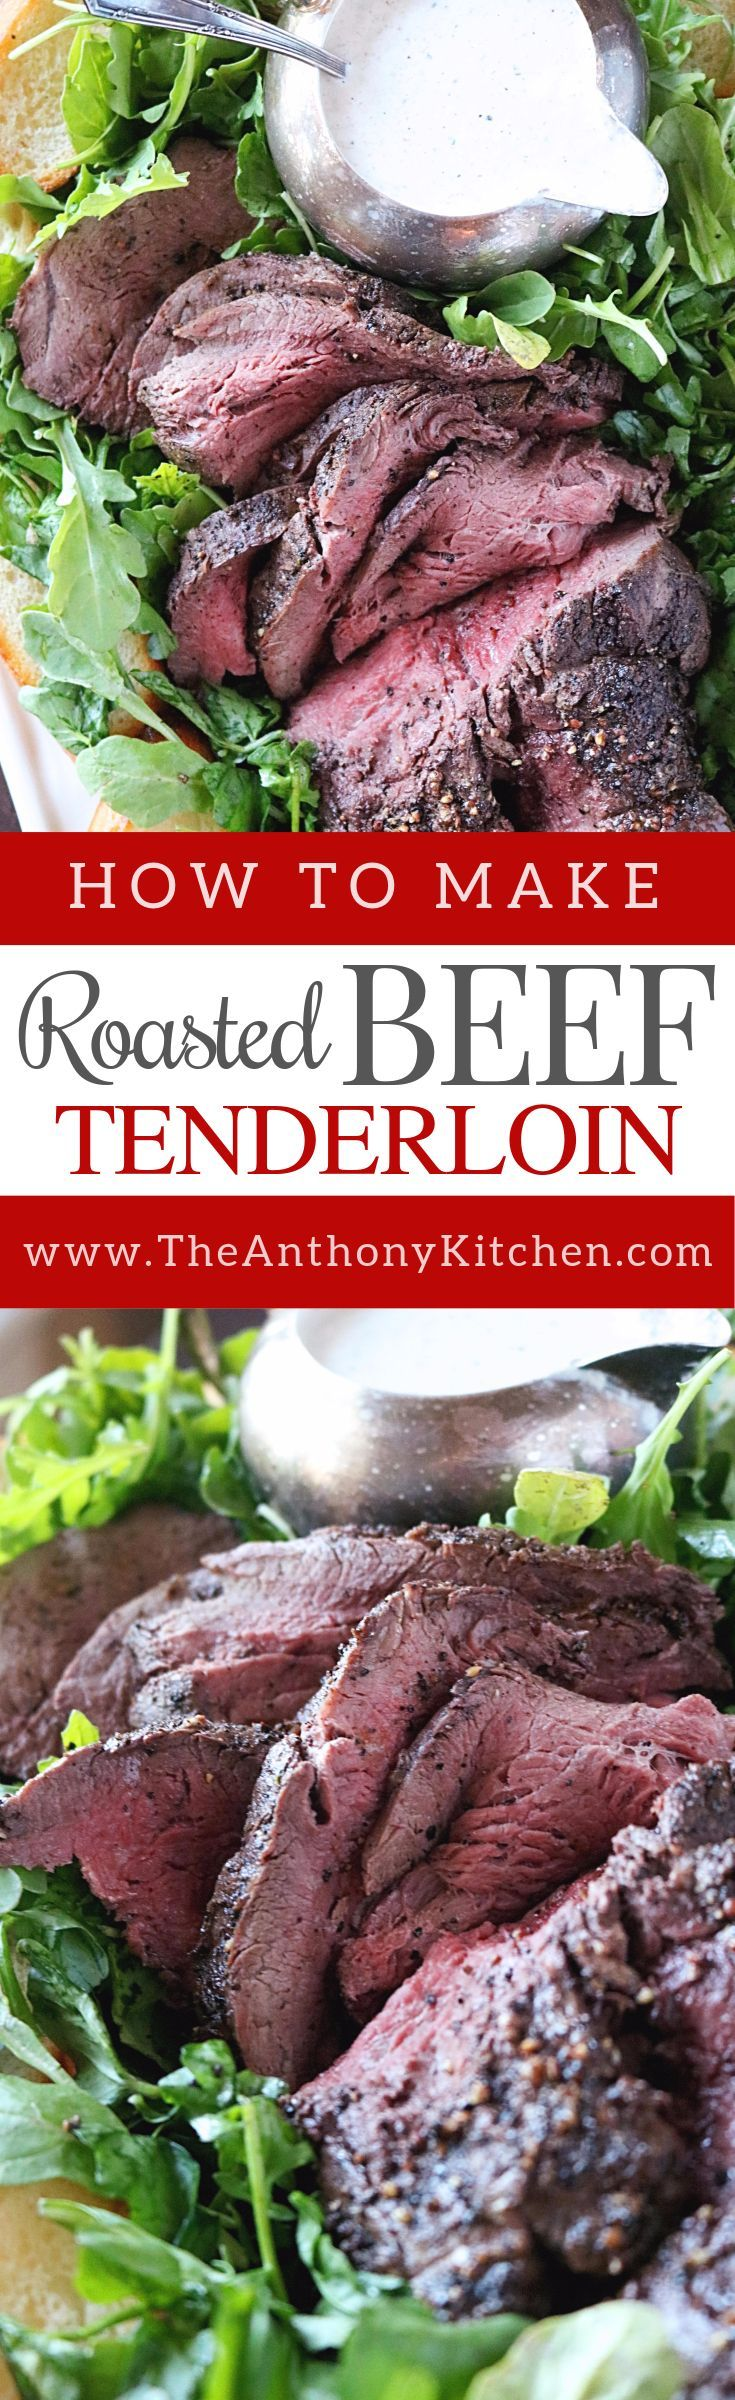 Beef Tenderloin Roast | A simple and easy recipe for roasted beef tenderloin, with helpful tips for purchasing, preparing and cooking | #roast #beeftenderloin #recipe